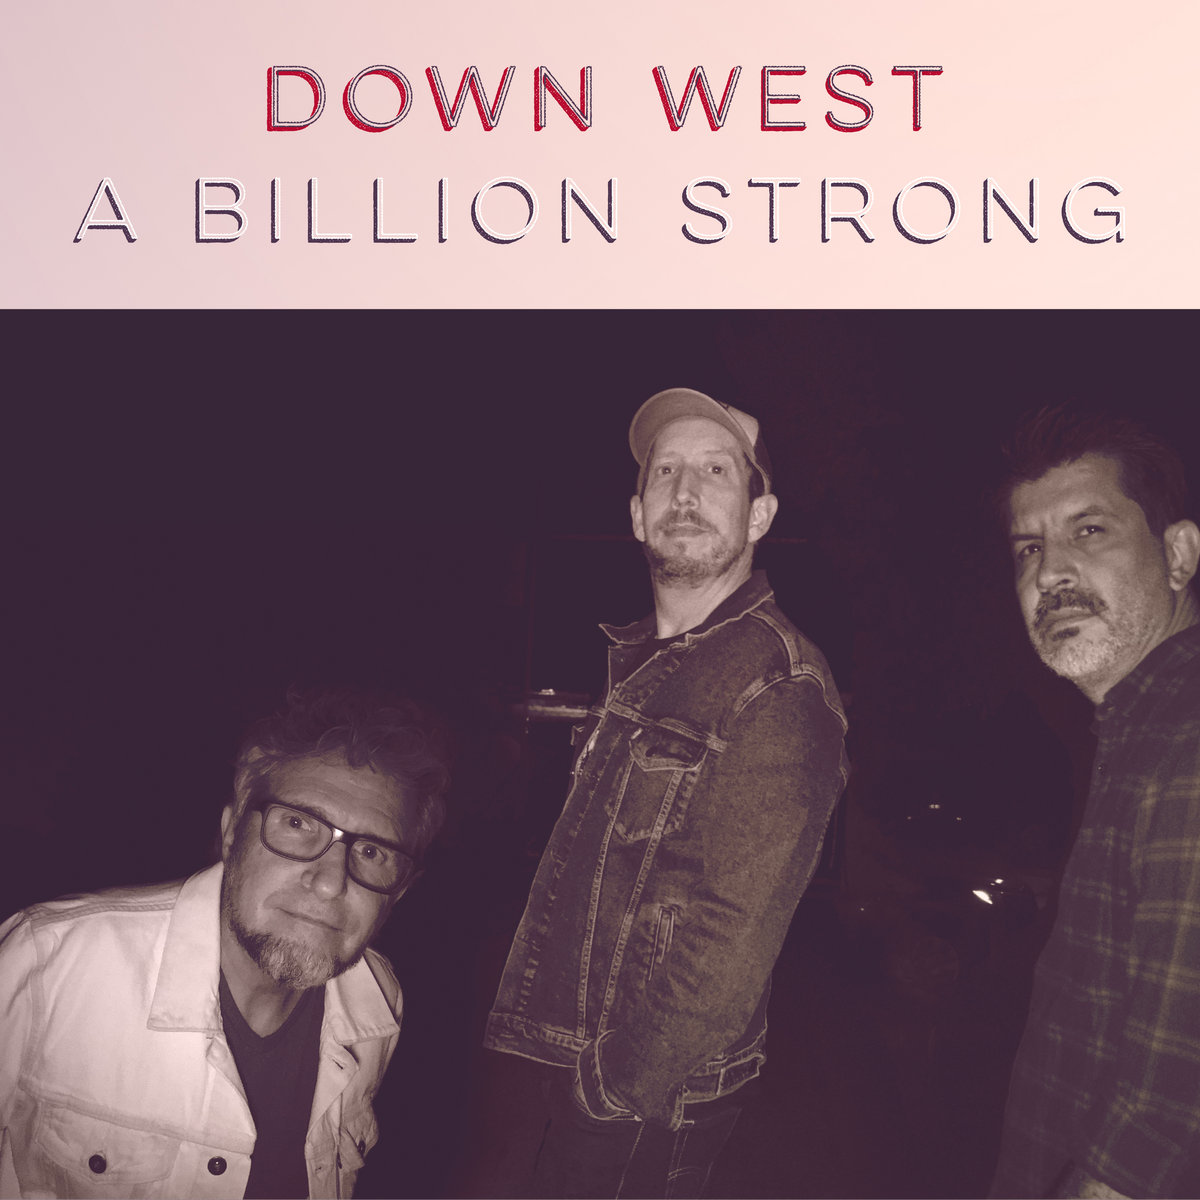 A Billion Strong by Down West